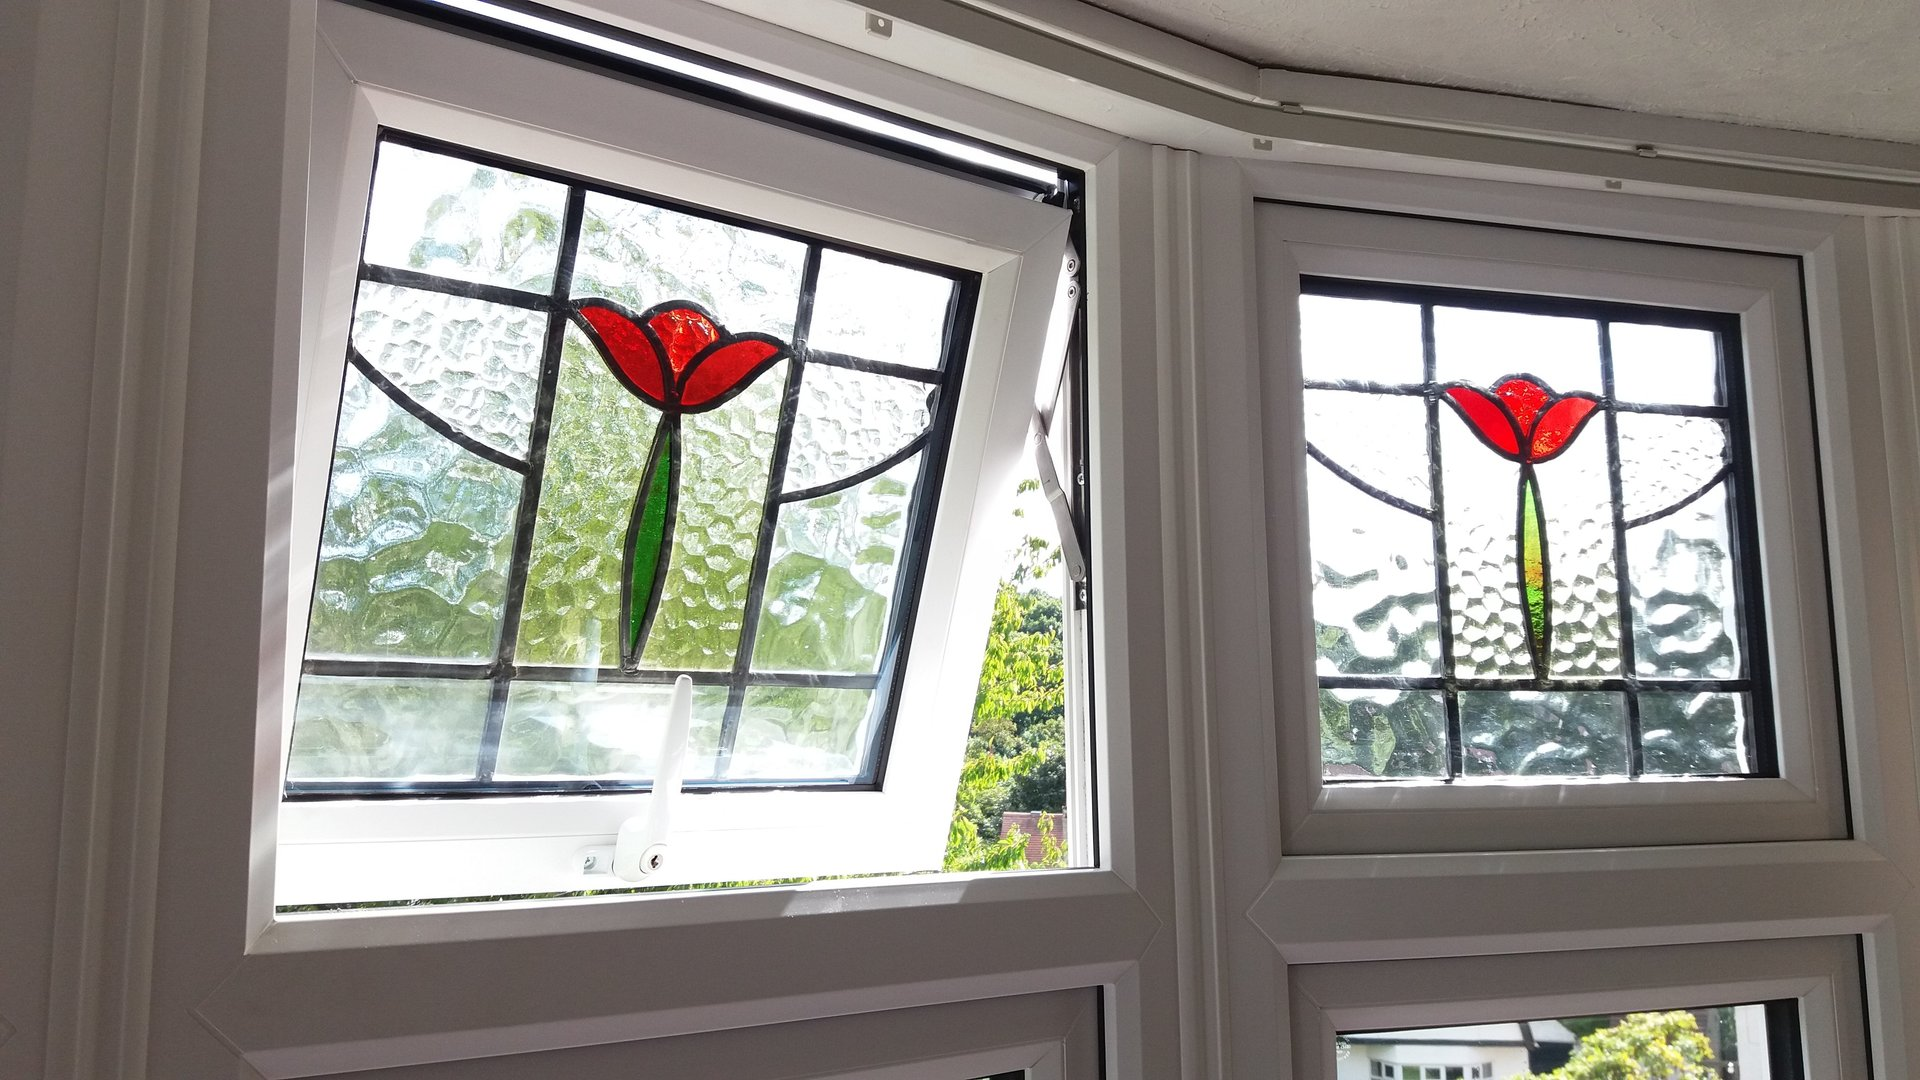 Stained glass encapsulation specialists in leeds - Eco friendly large glass windows offering effective energy savings for contemporary residence ...